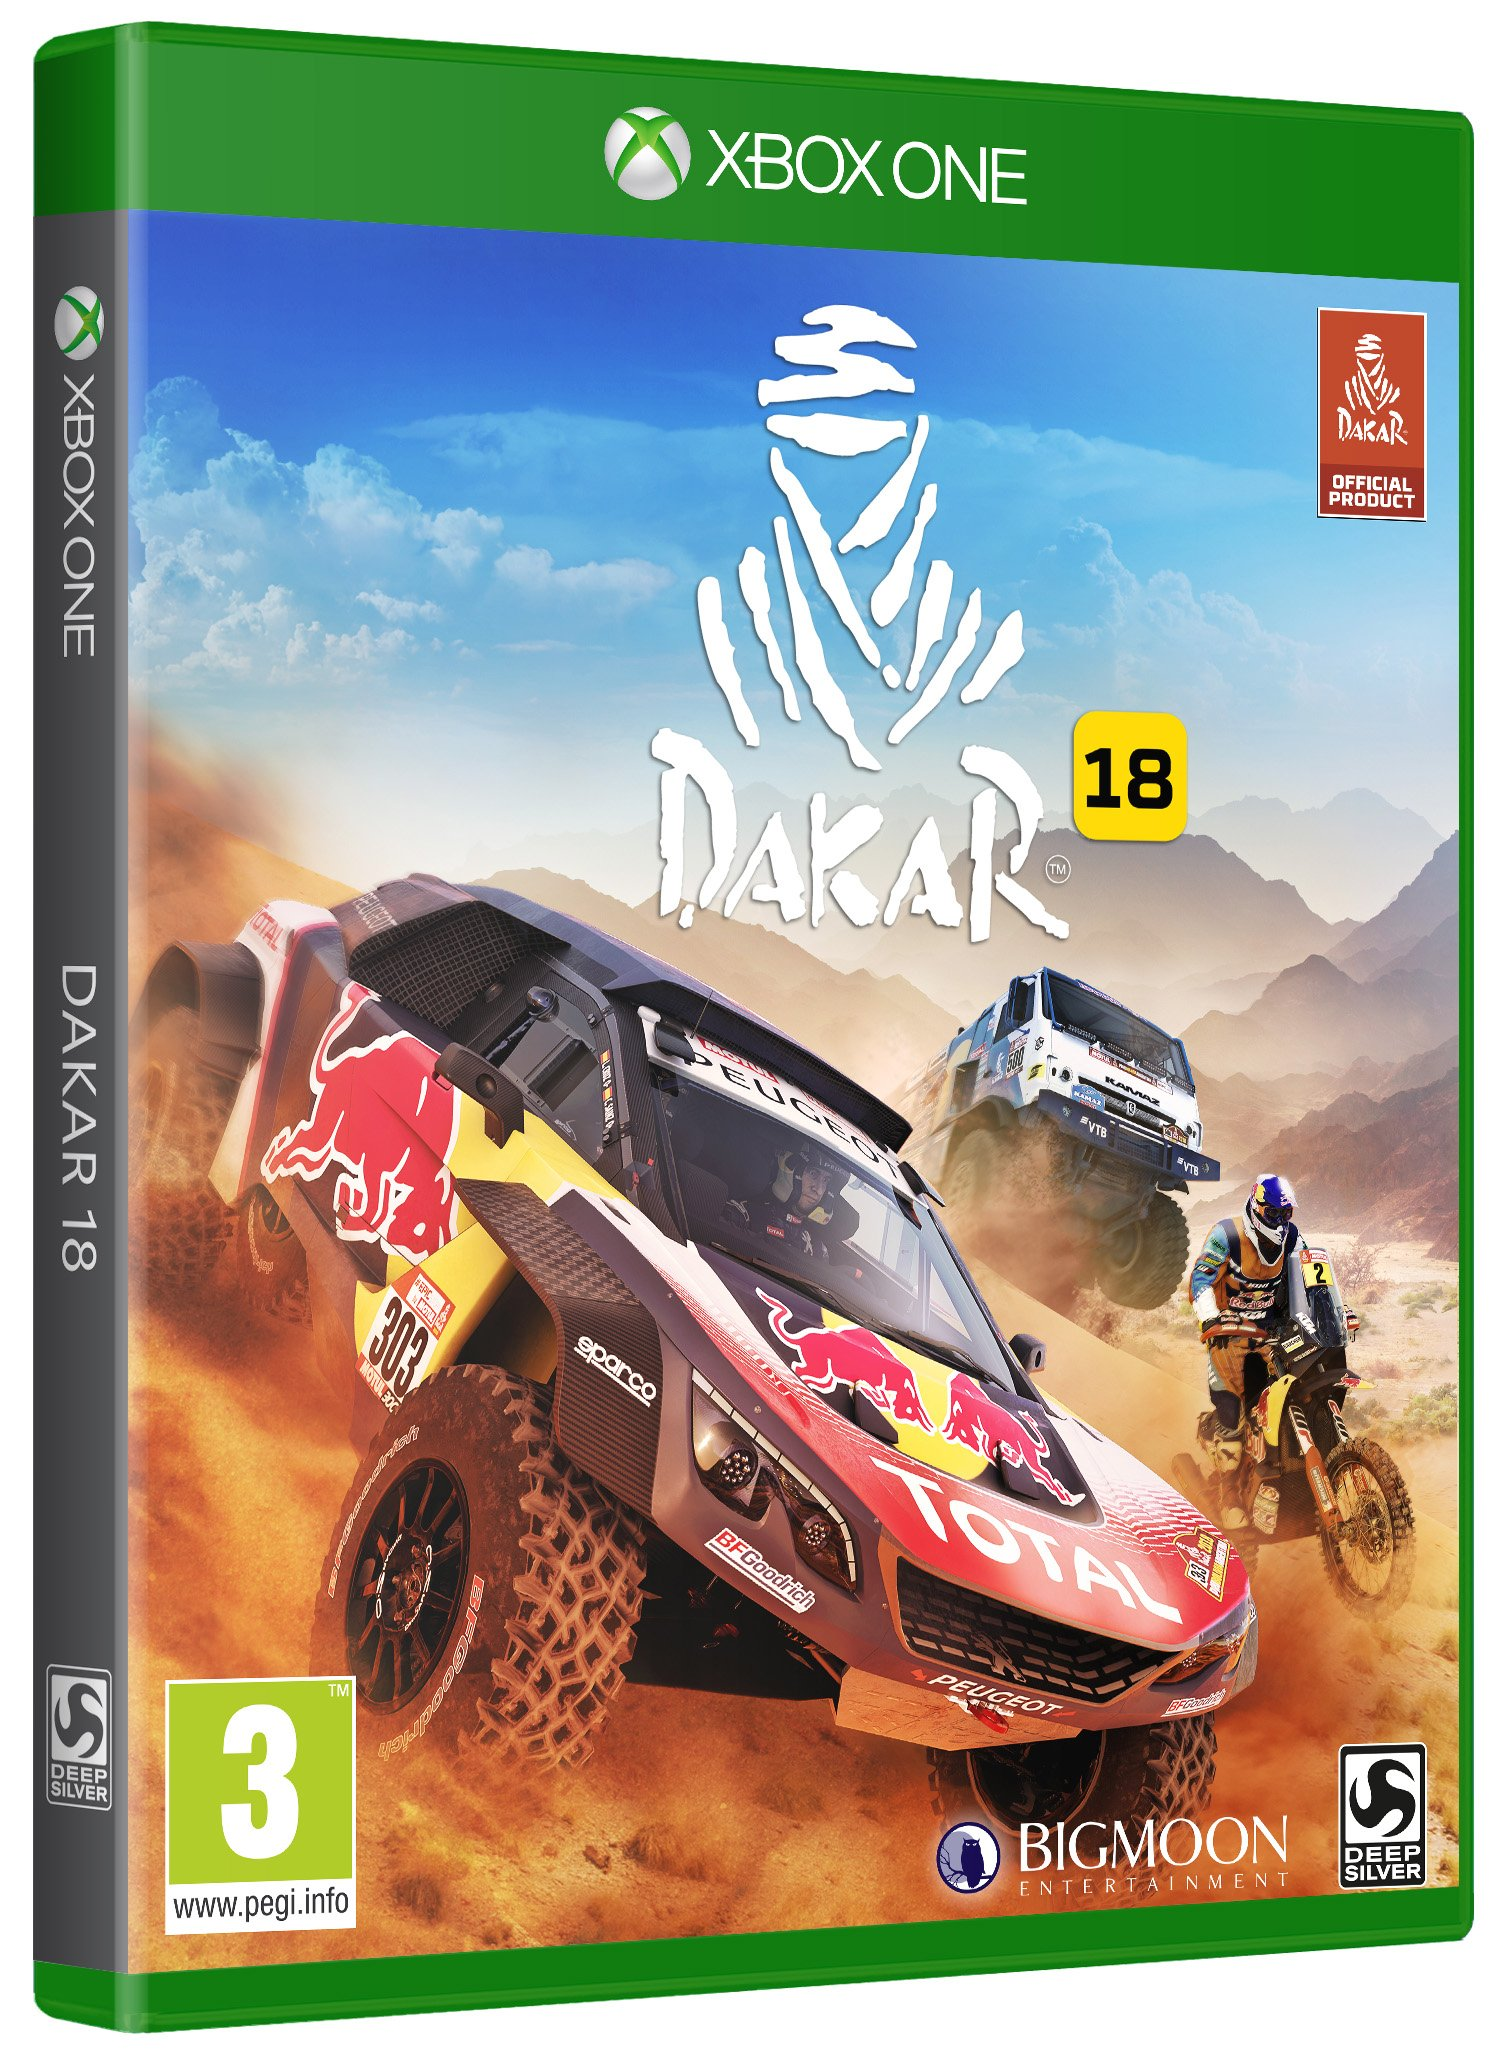 Dakar 18 Day One Edition - Xbox One: Amazon.es: Videojuegos